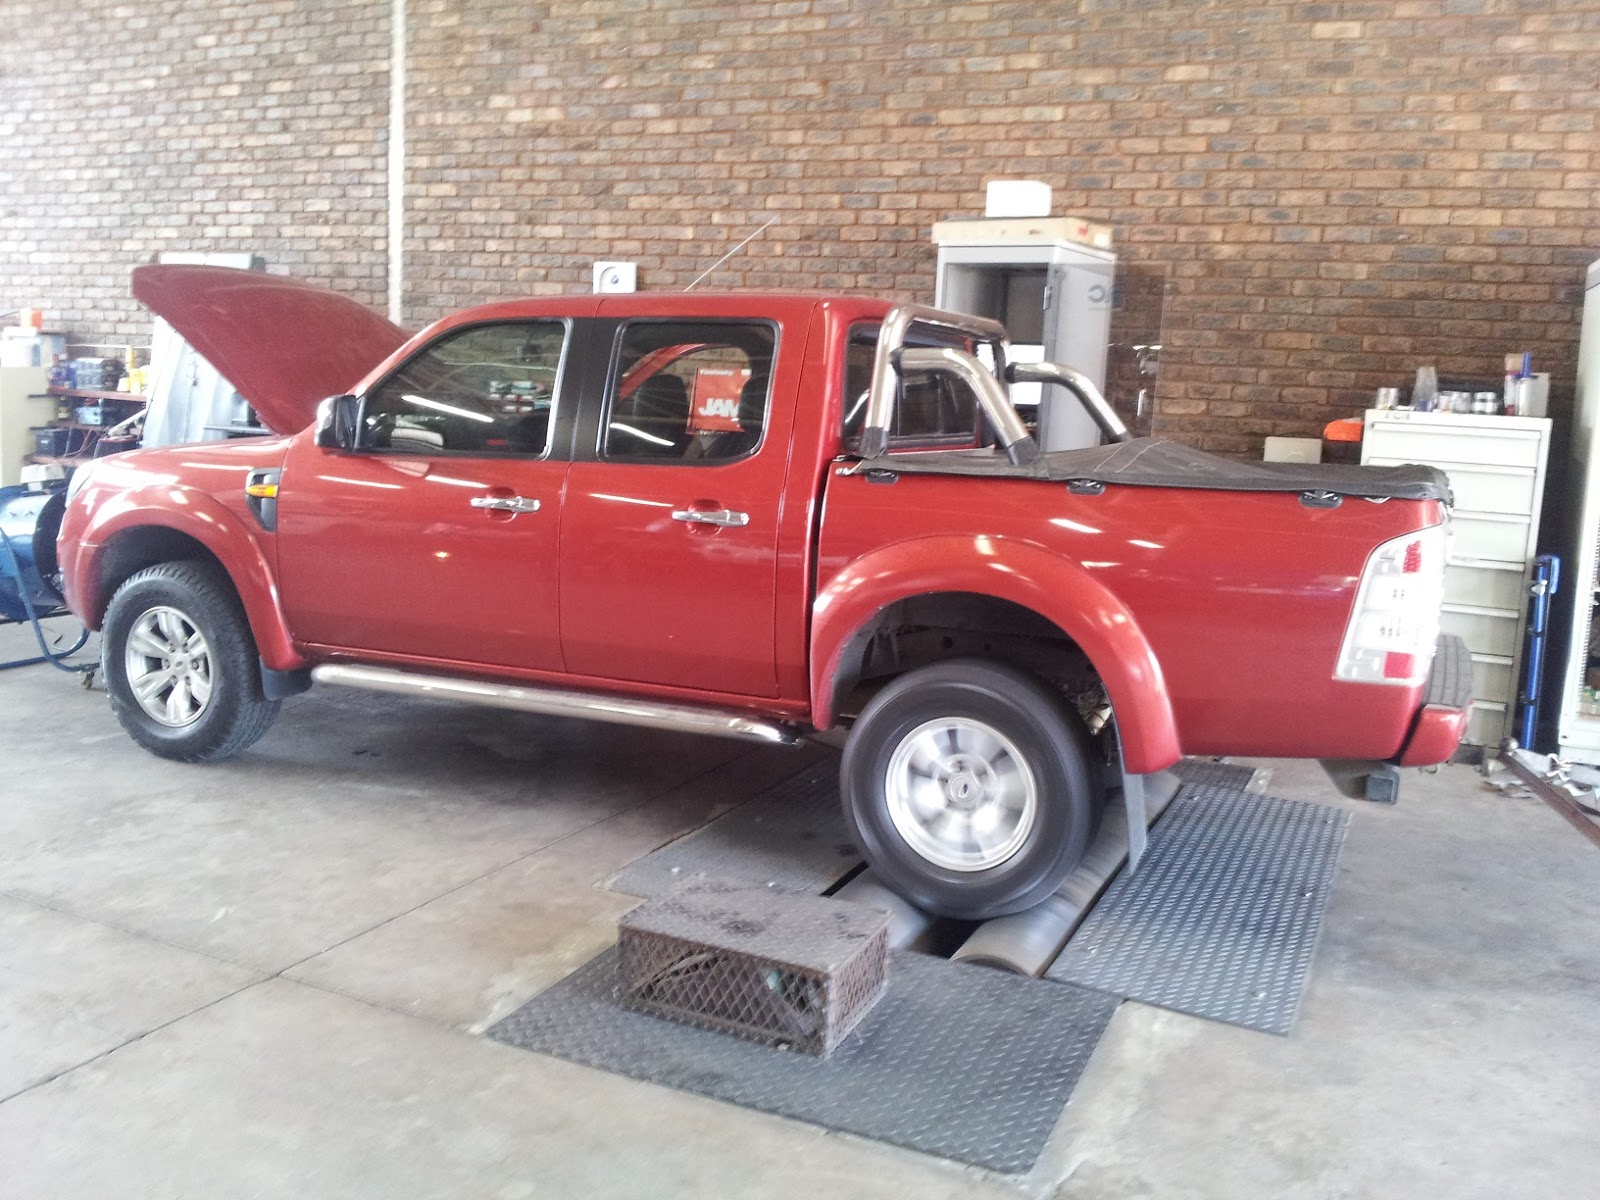 ford ranger 3 0 tdci performance chip tuning ecu remapping 20kw 110nm. Black Bedroom Furniture Sets. Home Design Ideas